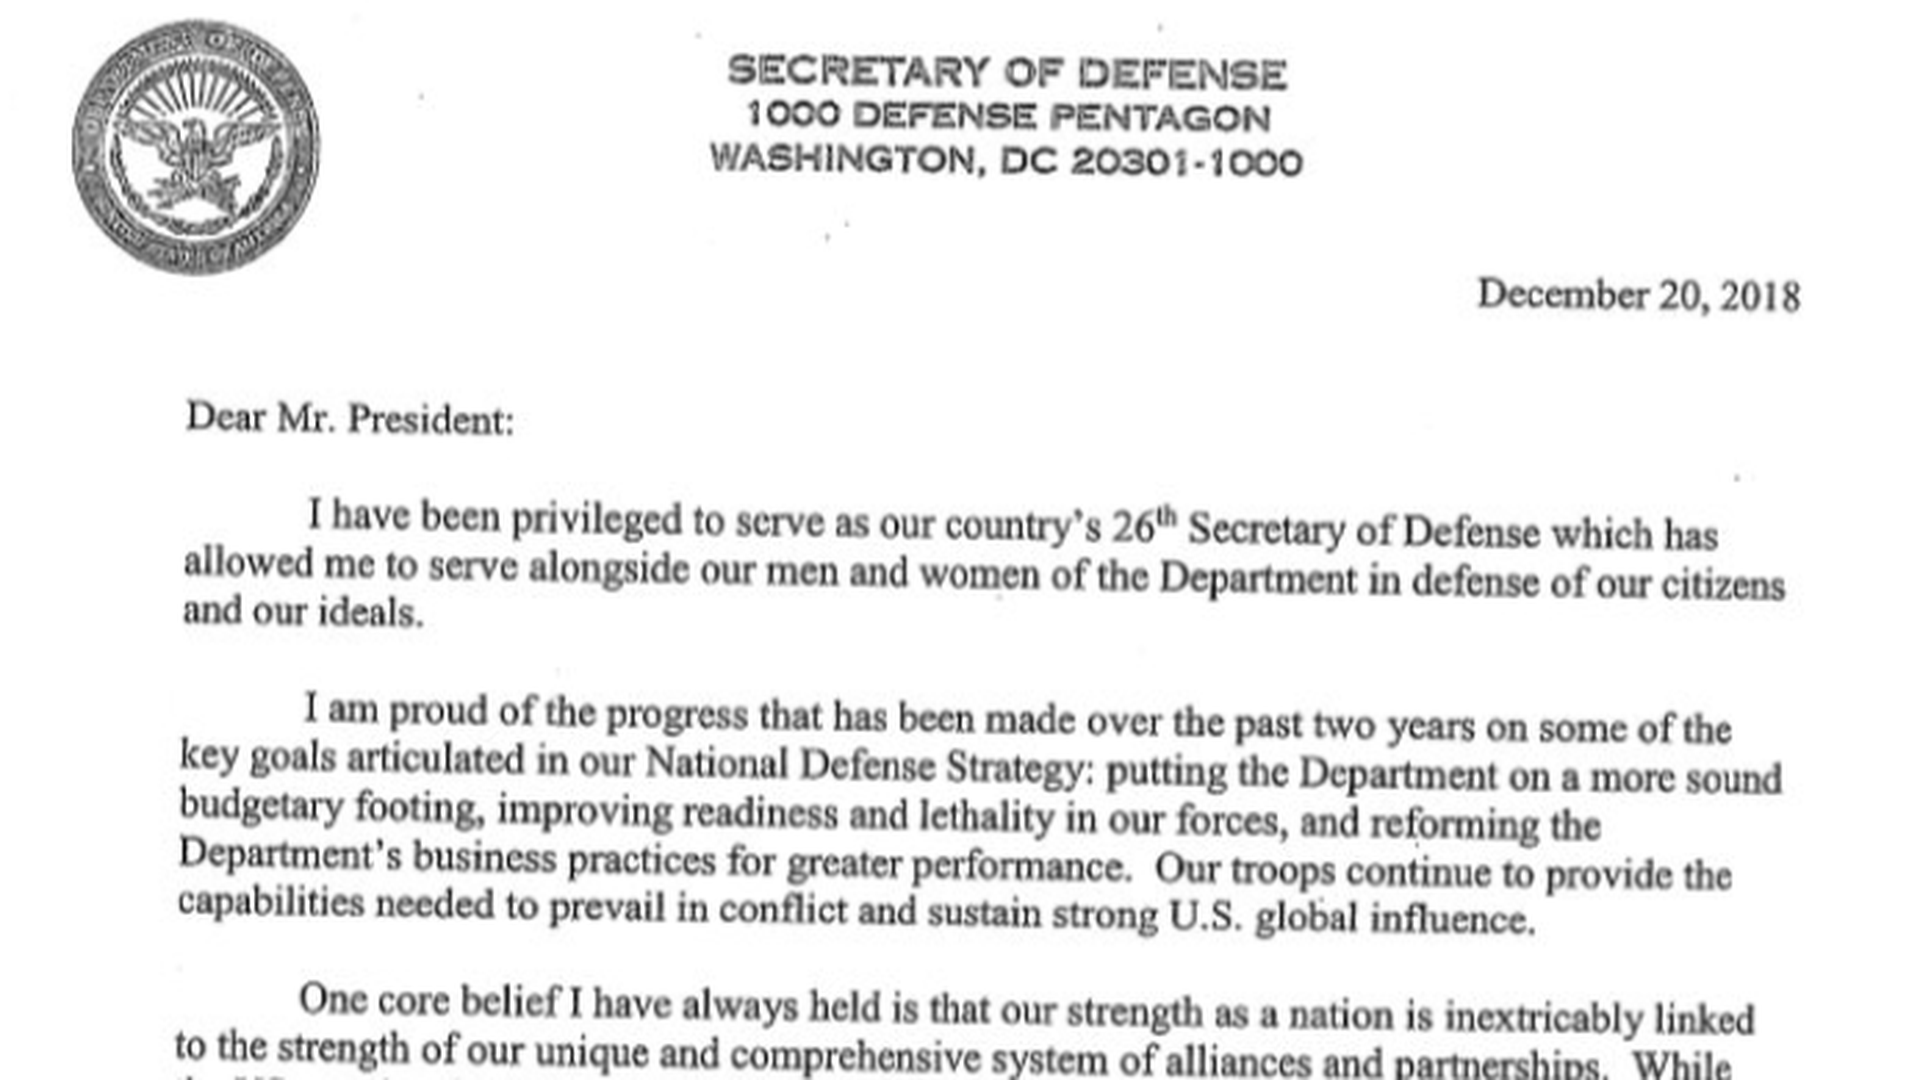 Mattis resignation letter lists ways he was